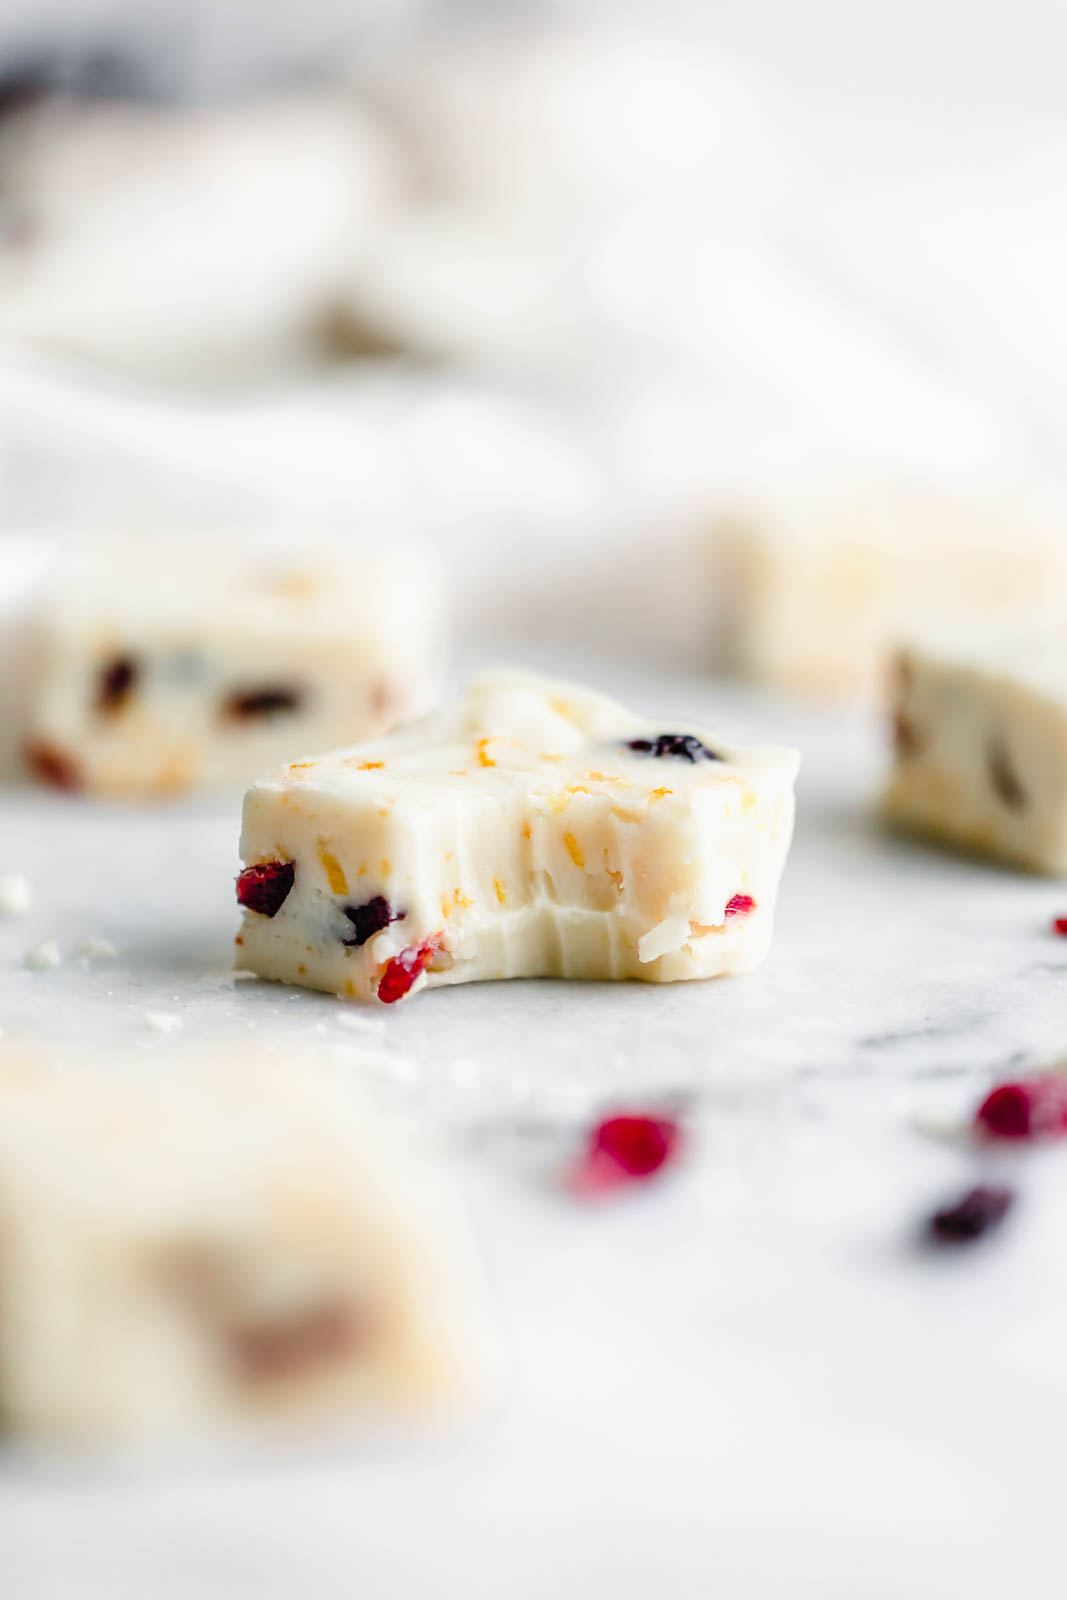 This 4-ingredient Cranberry Orange White Chocolate Fudge is a quick and delicious holiday treat the whole family will love!